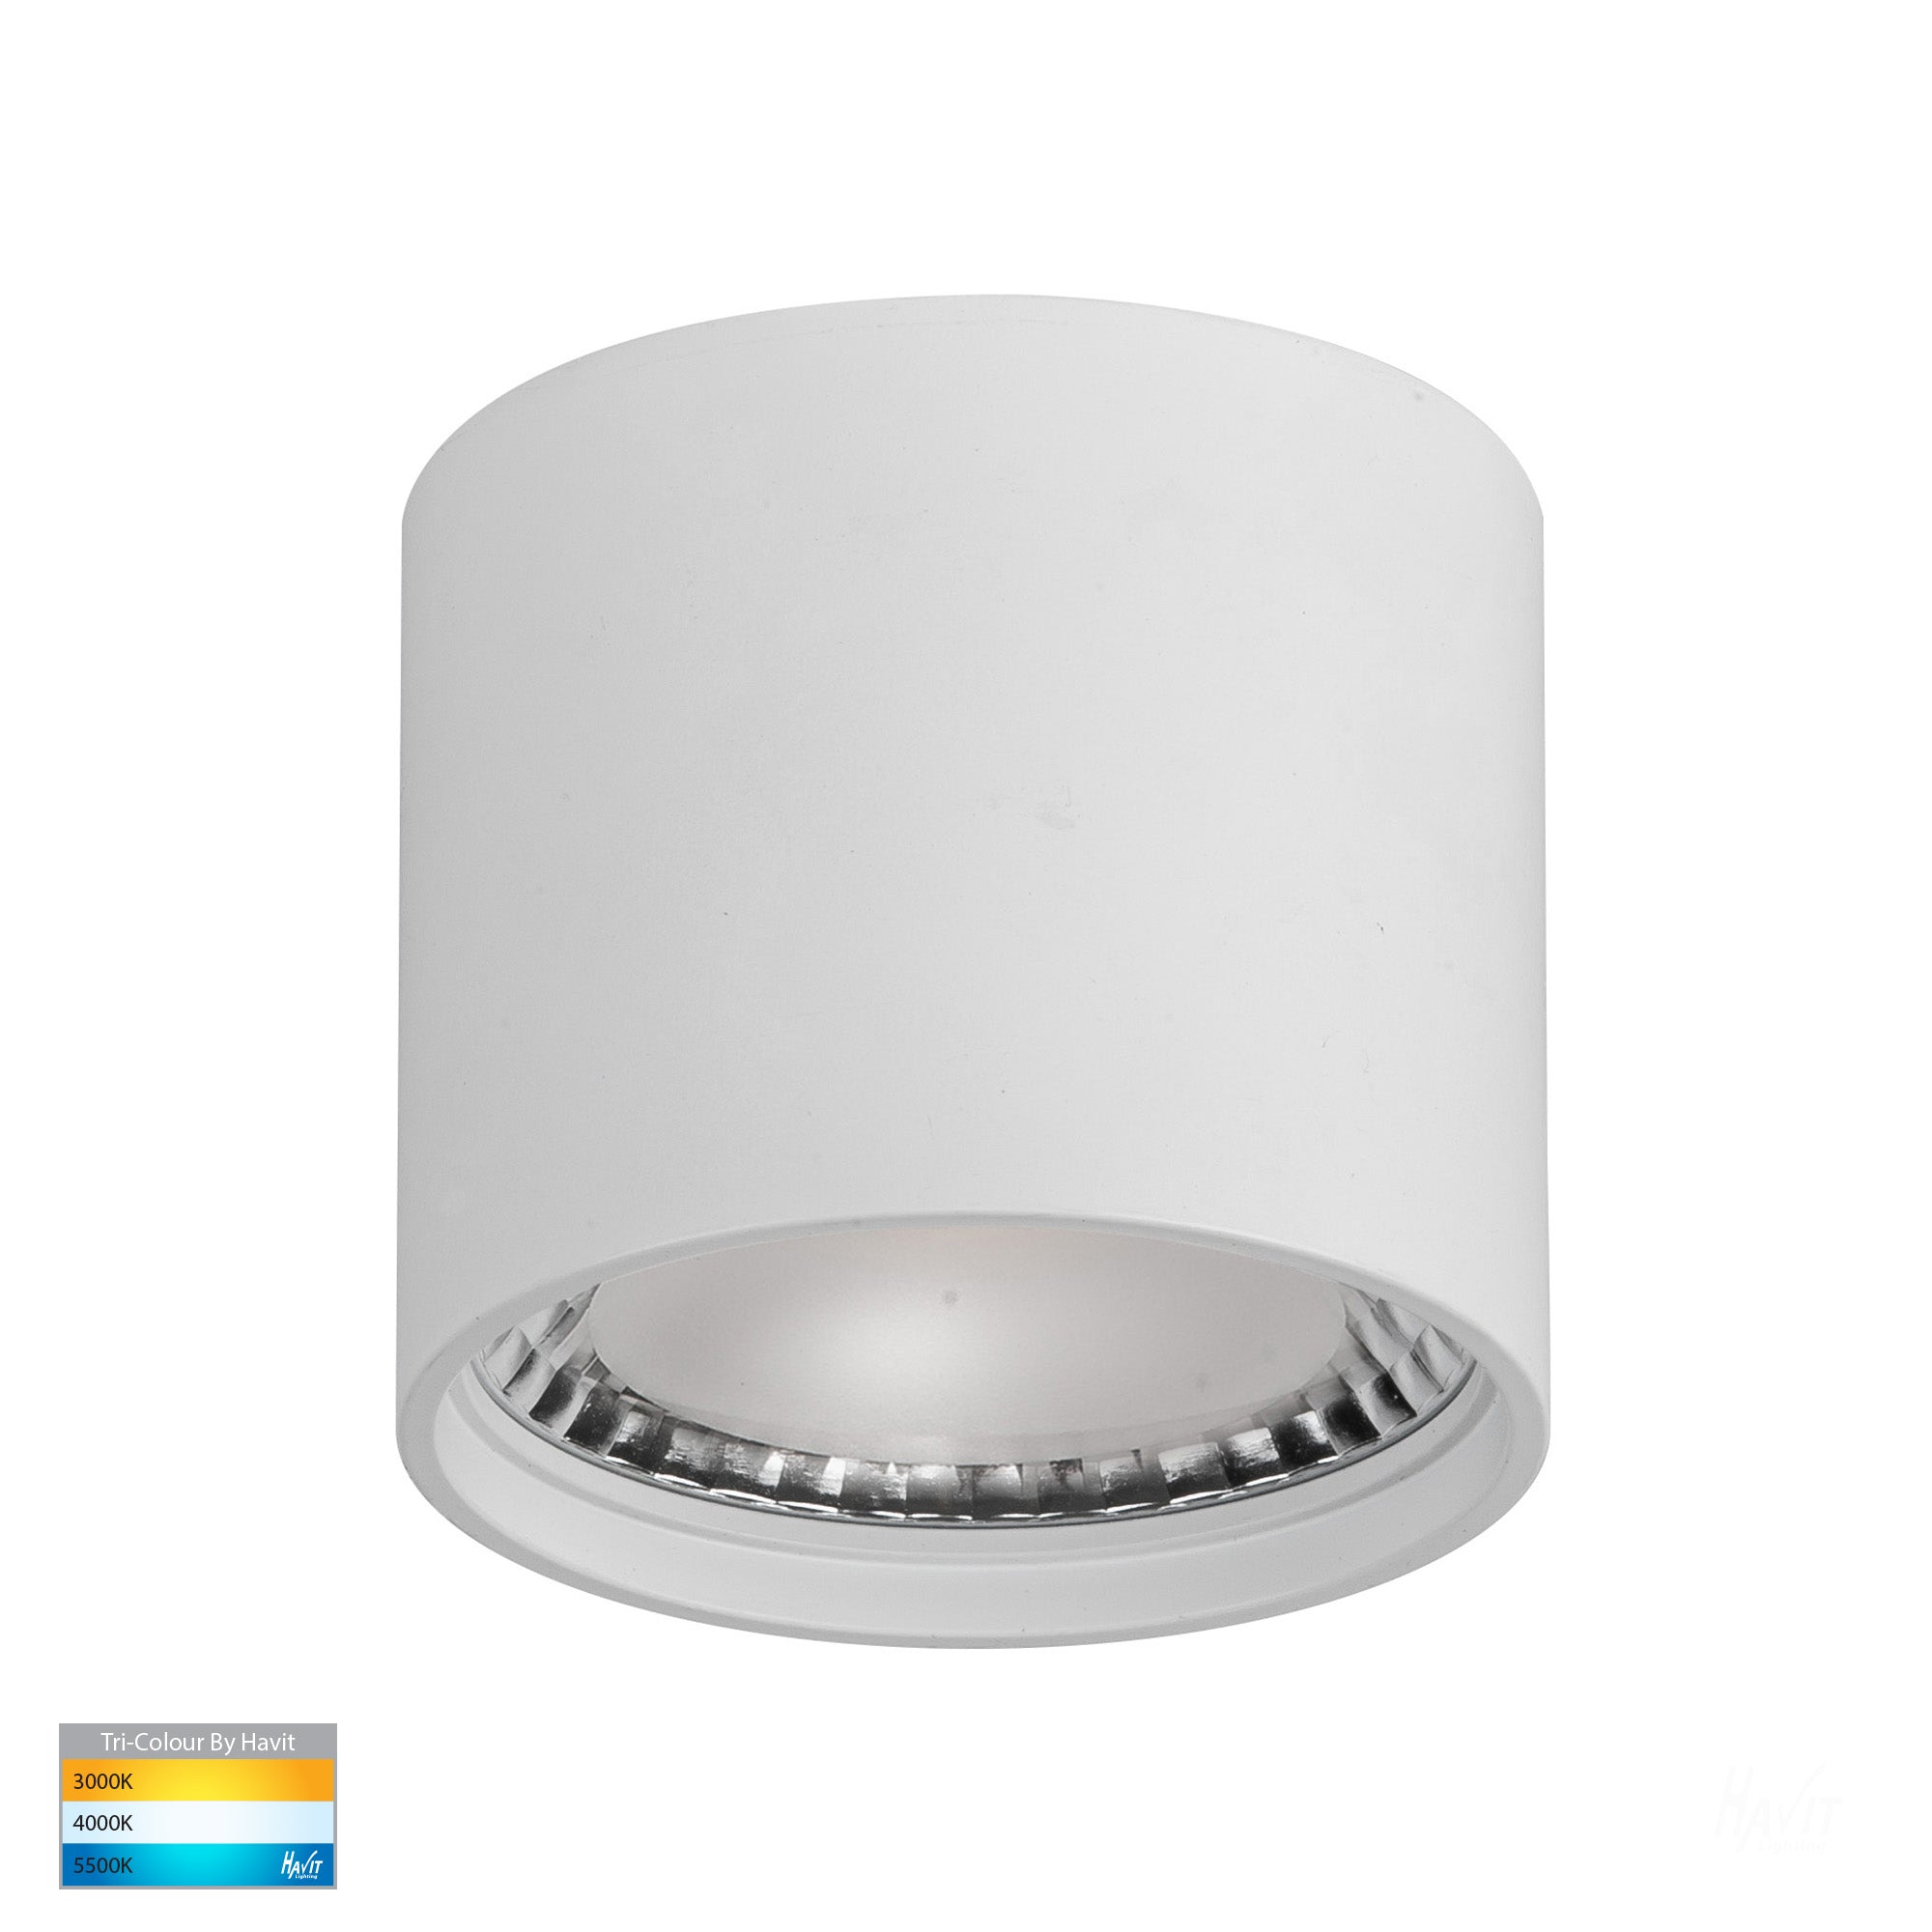 HV5802T-WHT - Nella White 7w Surface Mounted LED Downlight